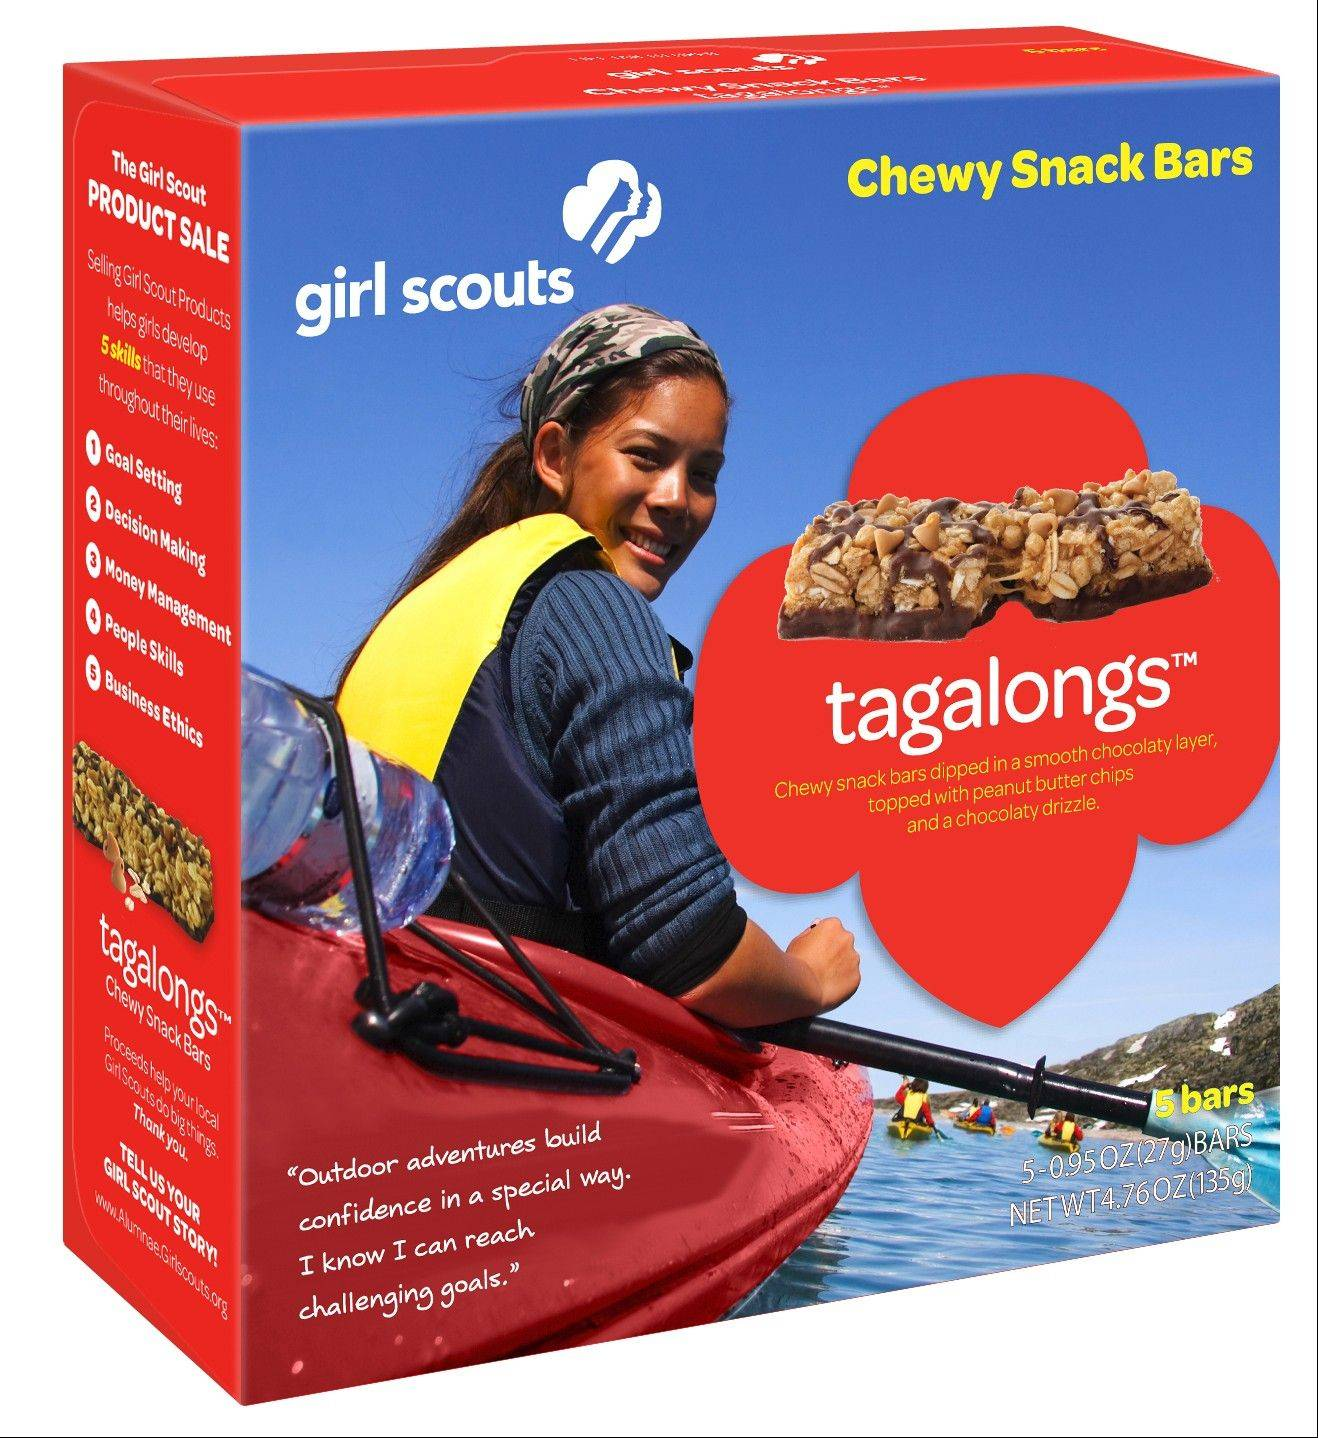 Girl Scouts of Northern Illinois is one of only six councils across the nation to pilot two varieties of Girl Scout Snack Bars during the 2013 Girl Scout Cookie Program -- Tagalongs and Double Dutch snack bars.